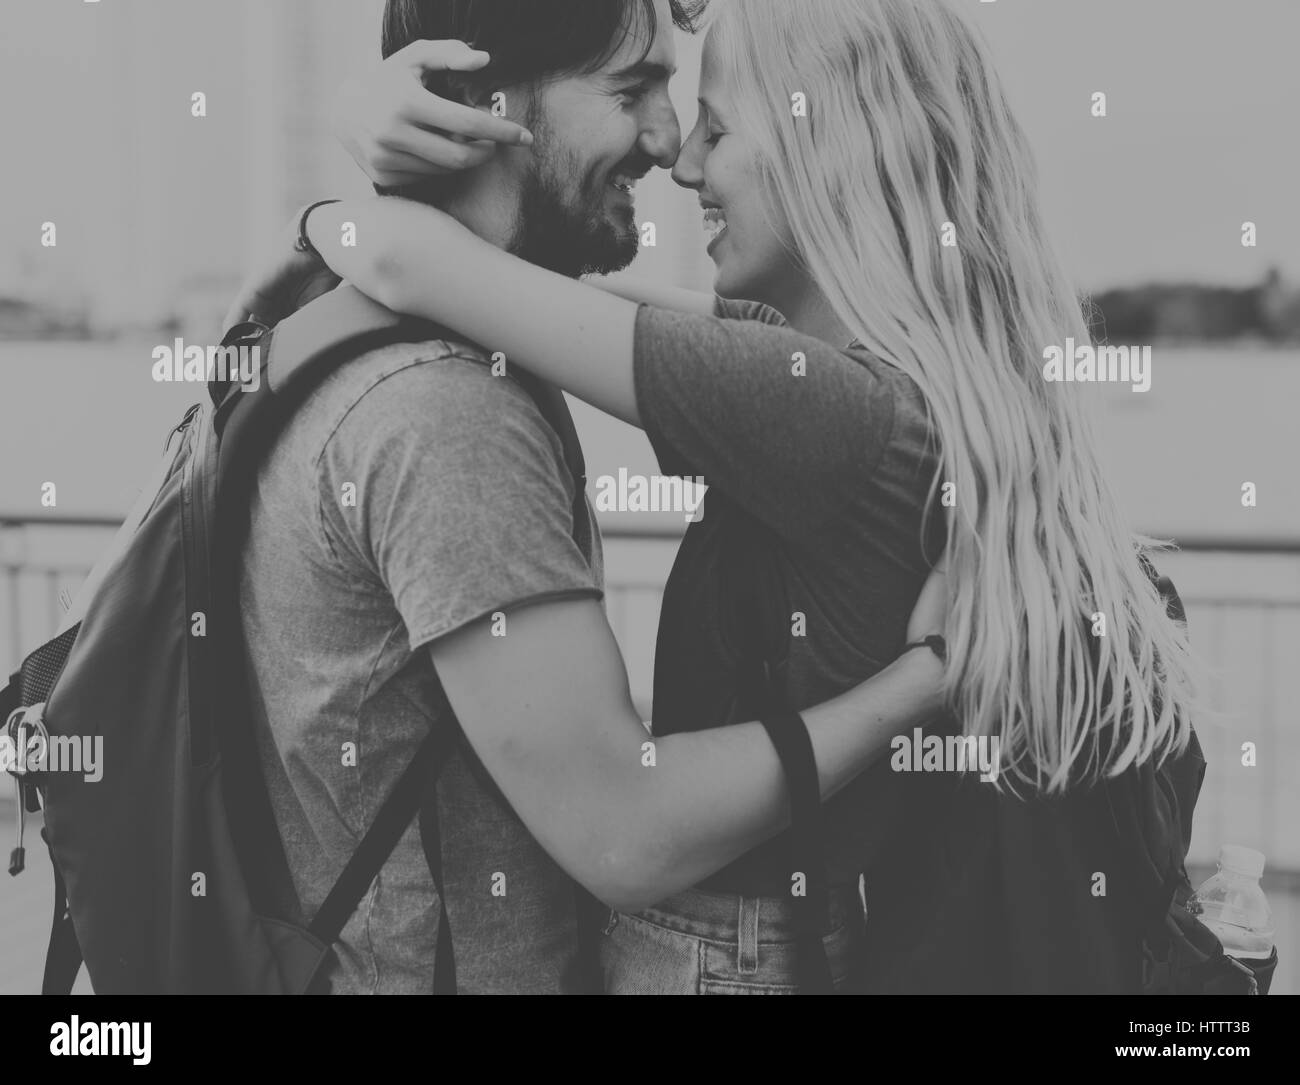 Couple staring at each other city background - Stock Image